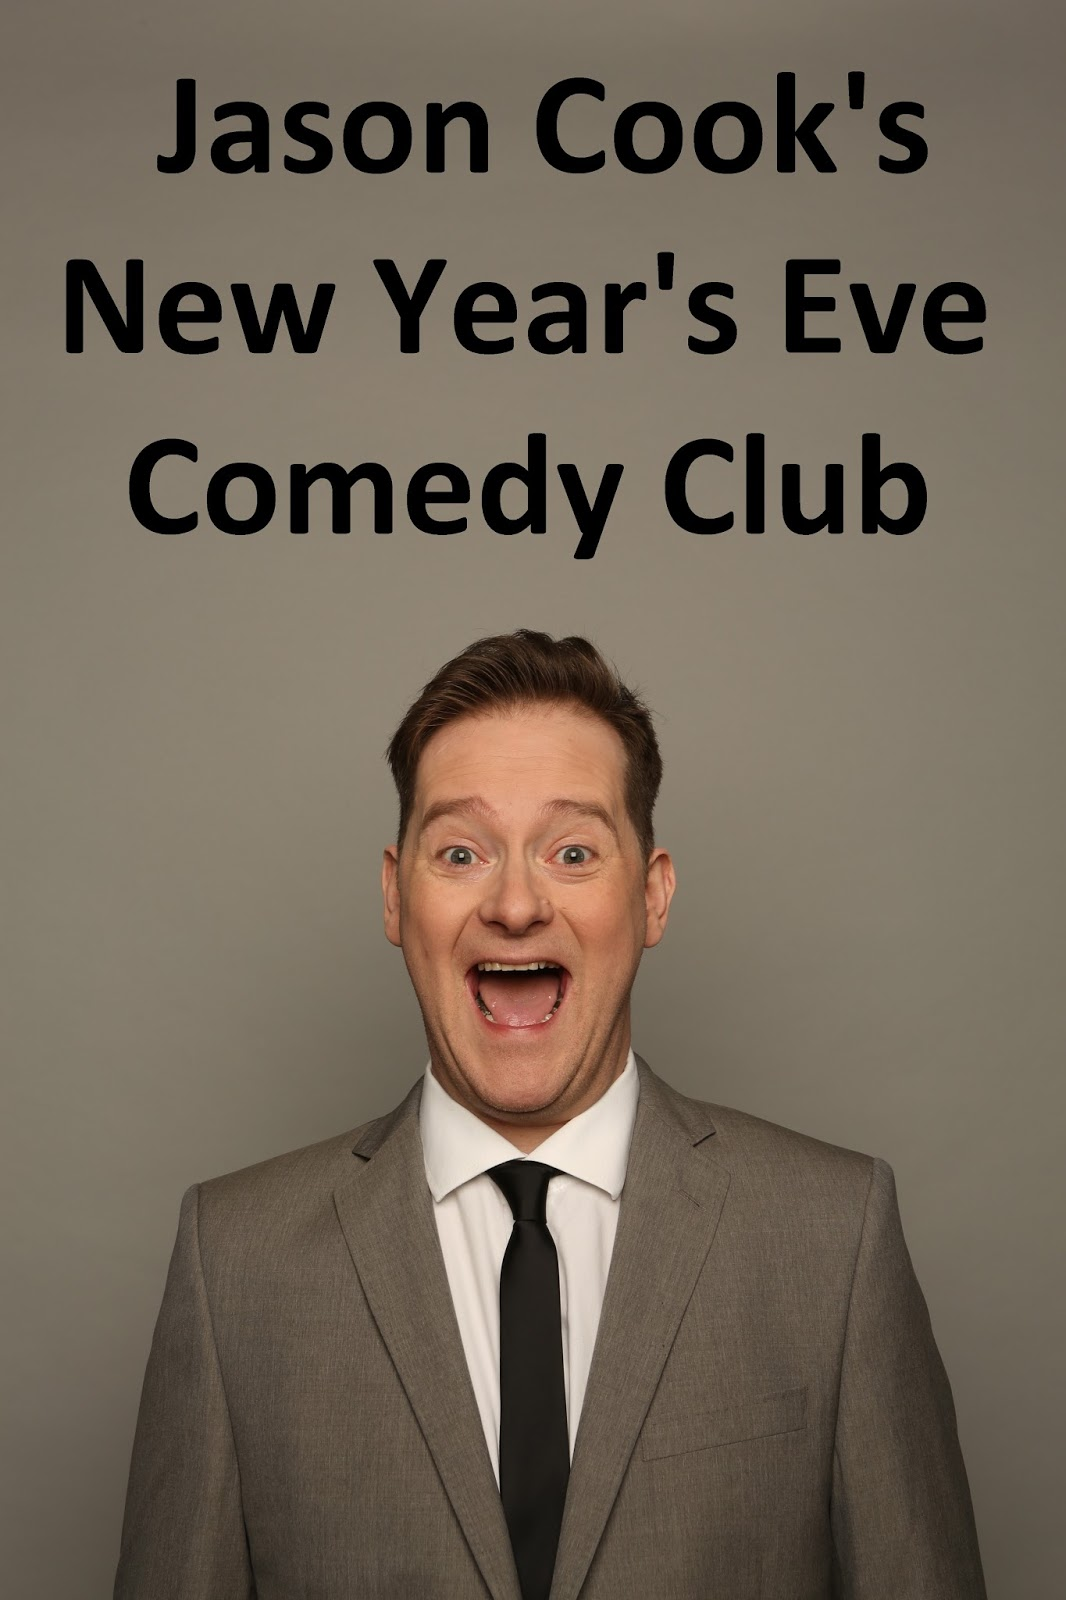 Jason Cooks New Years Eve Comedy Club at The Customs House in South Shields